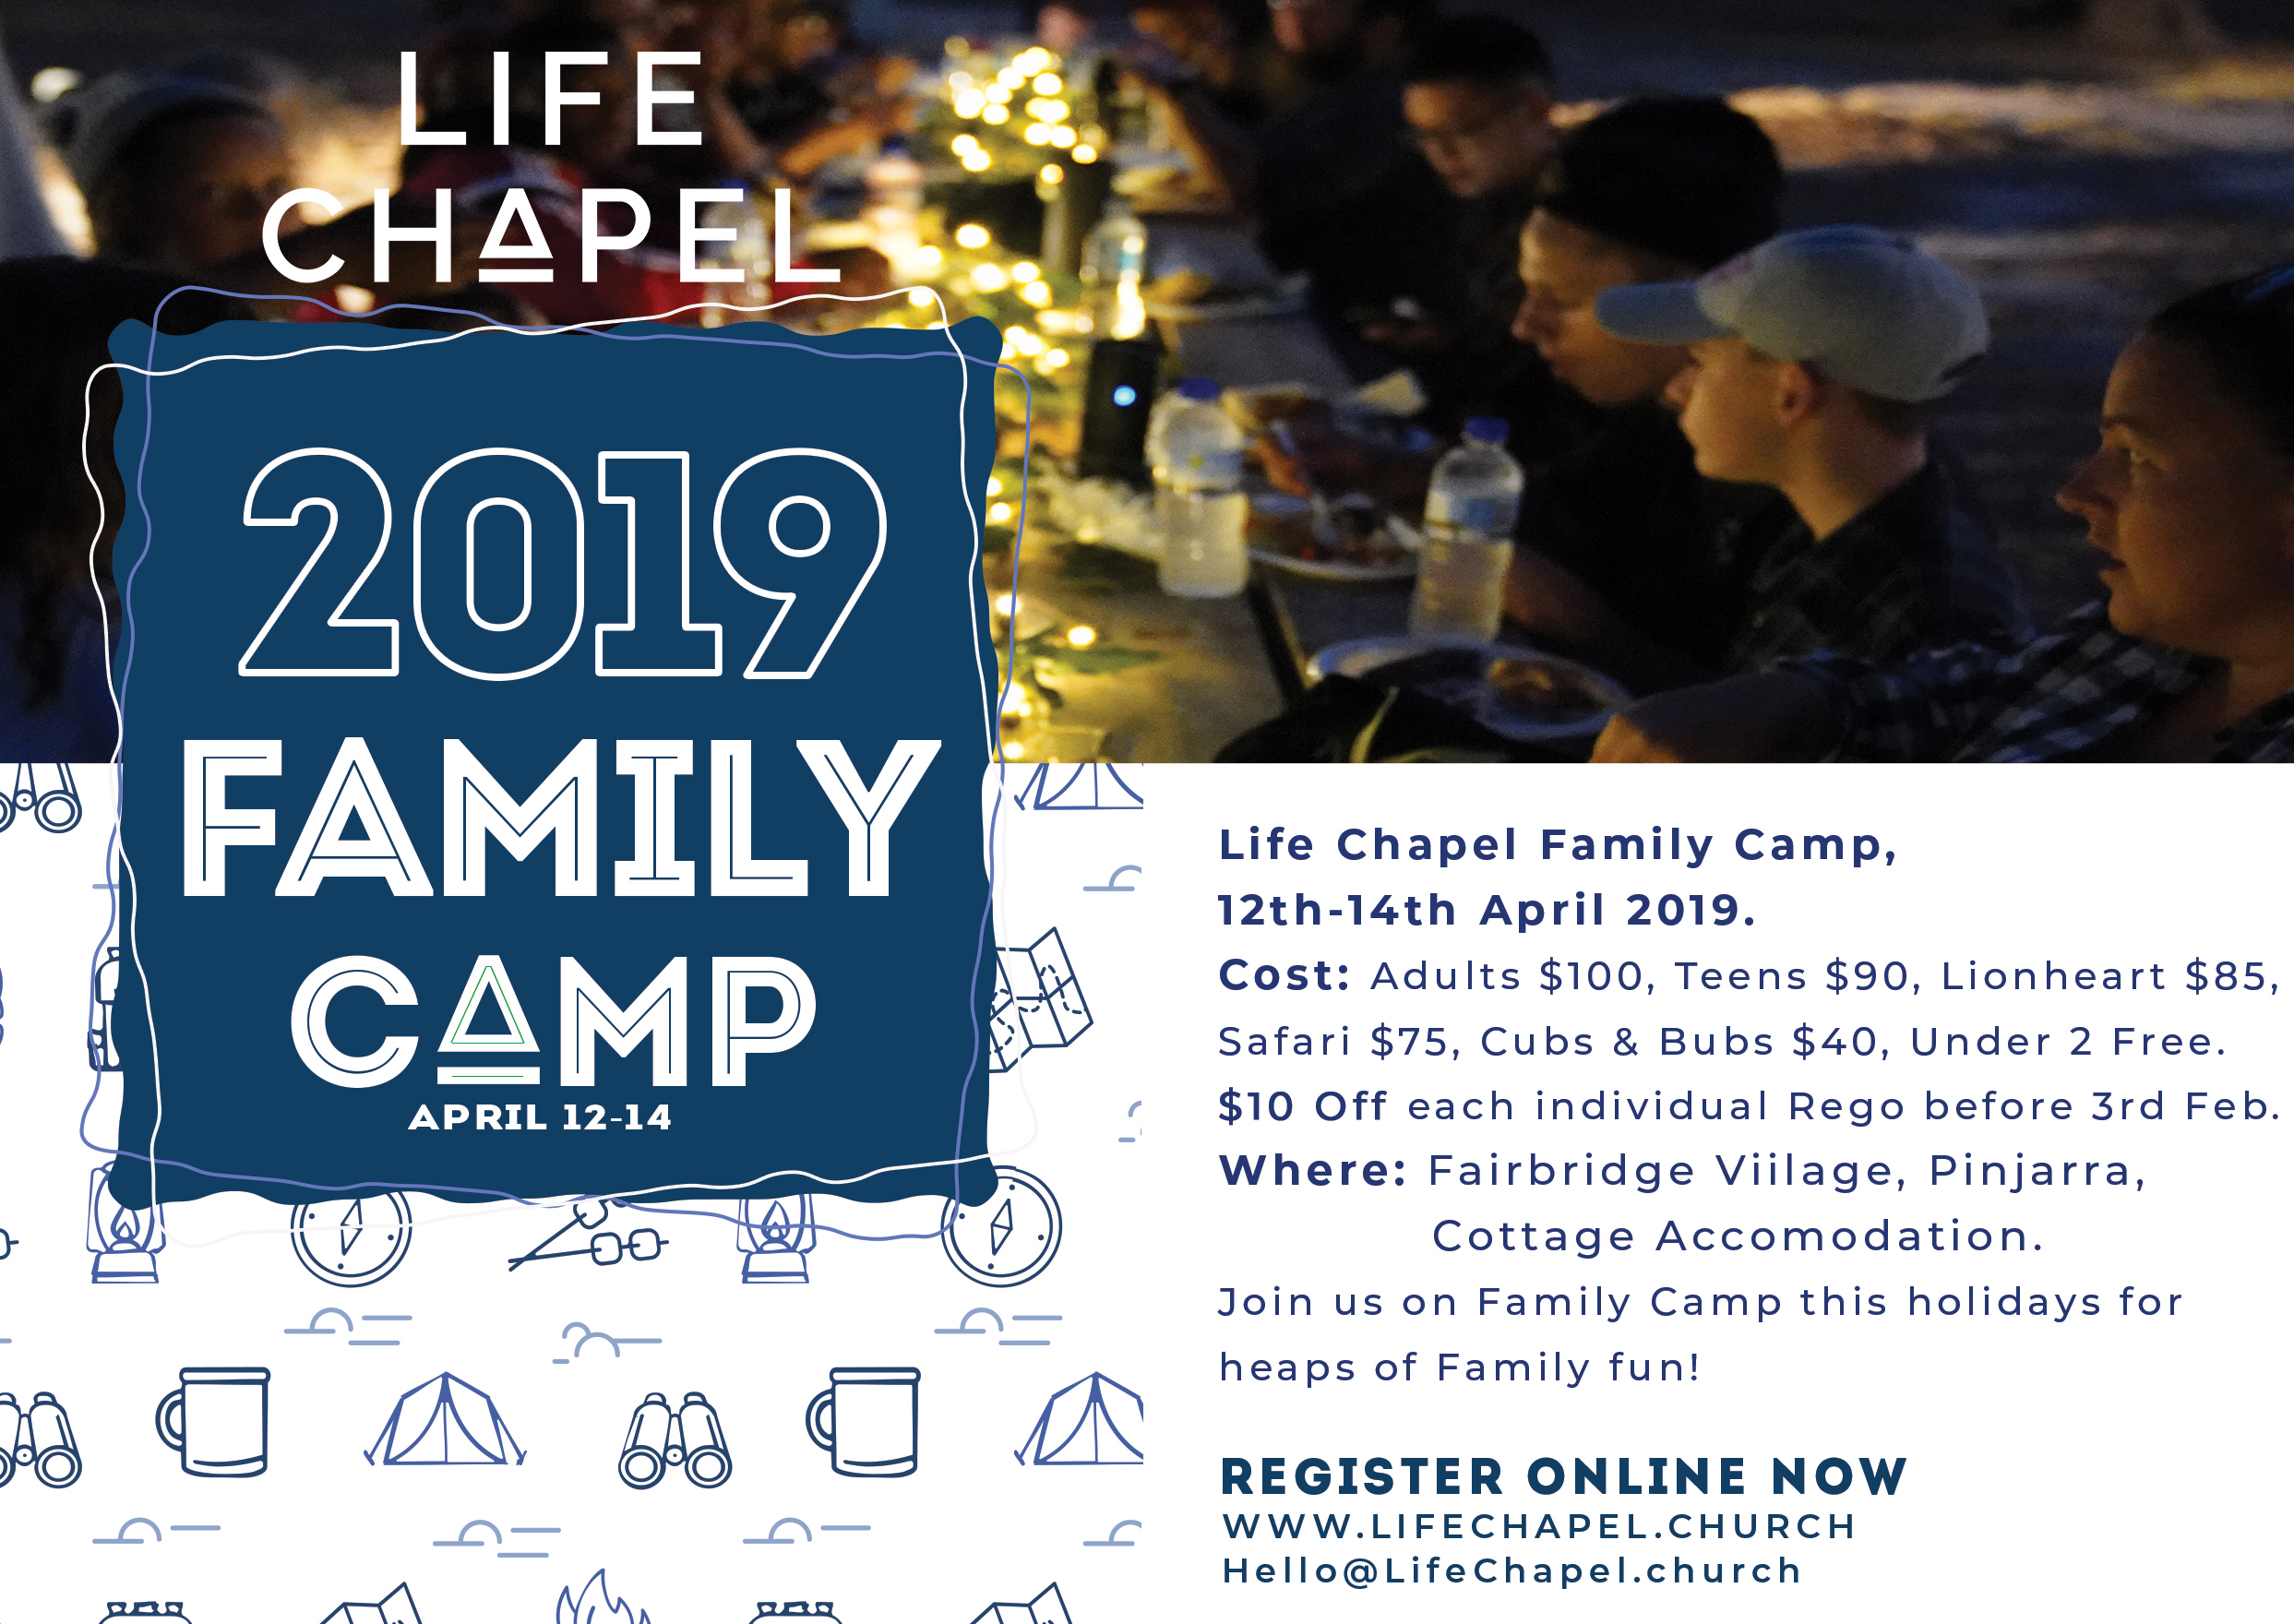 2019 Family Camp A5 01-02 Cropped.jpeg